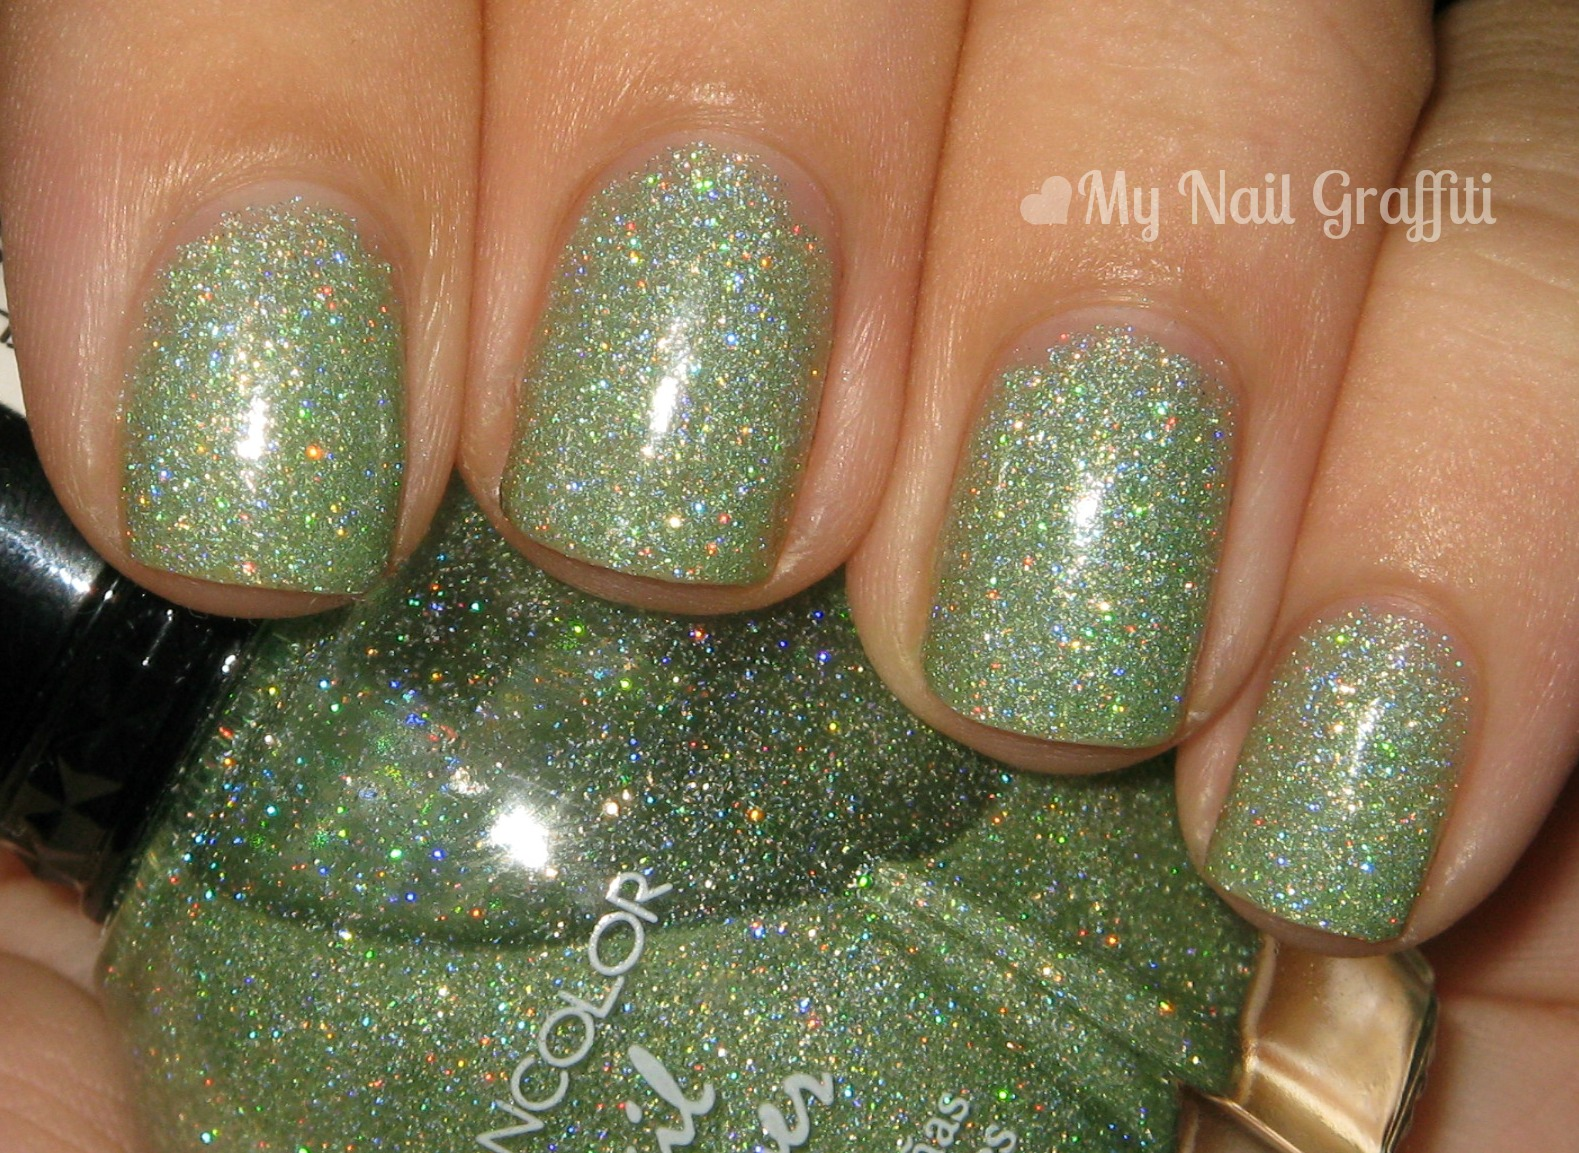 My Nail Graffiti: Kleancolor Holo Green